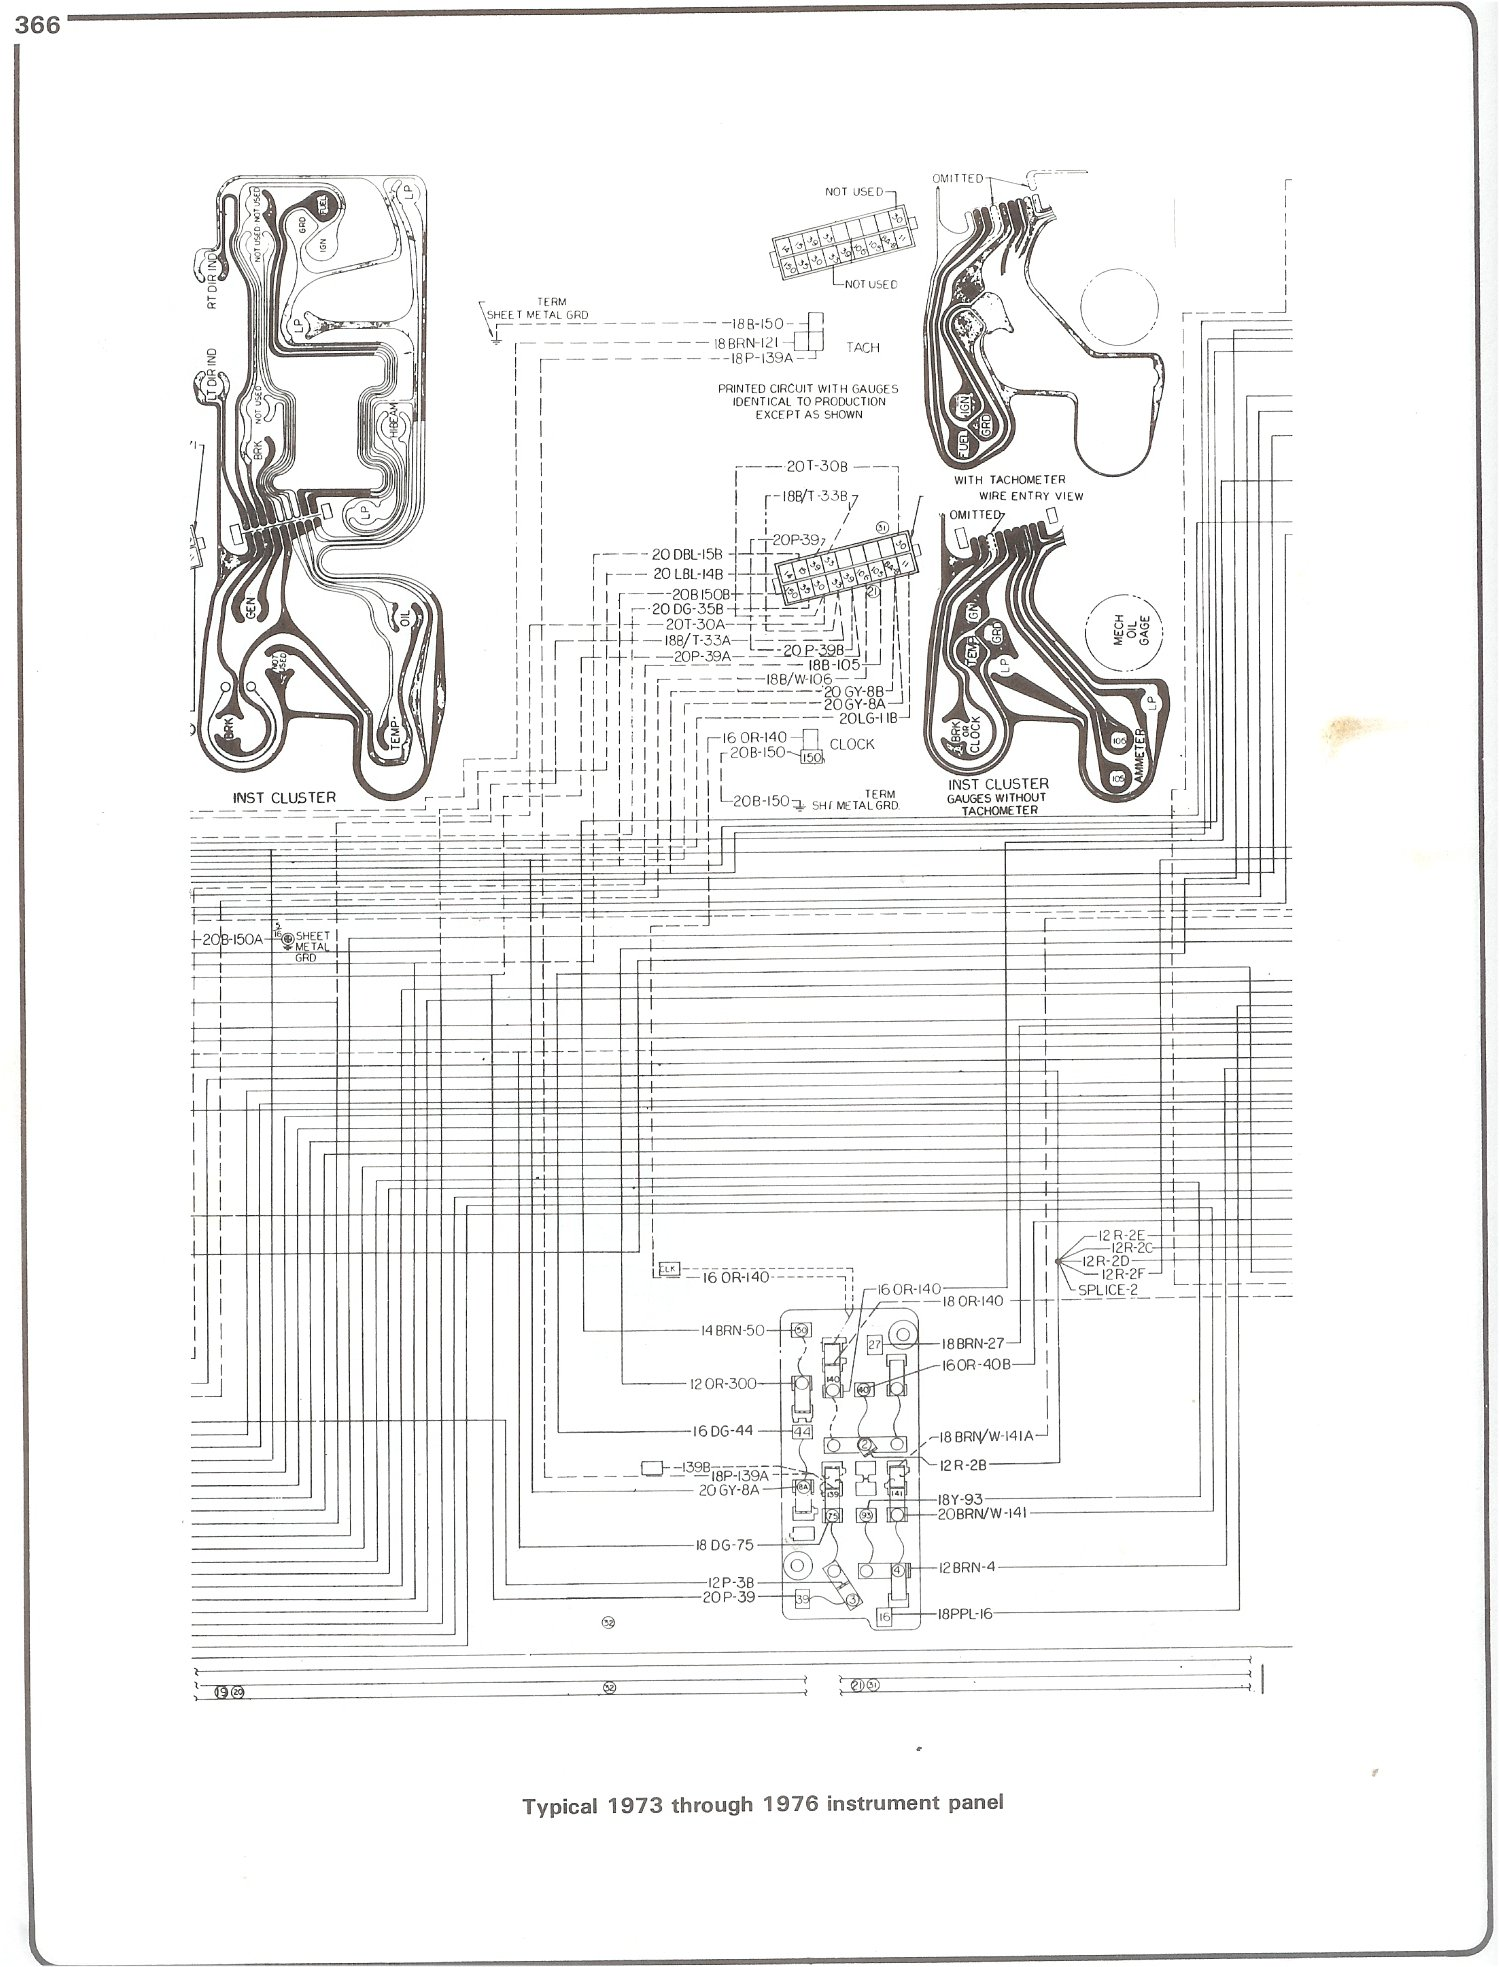 complete 73 87 wiring diagrams rh forum 73 87chevytrucks com 1966 GMC Truck Wiring Diagrams 1970 GMC Truck Wiring Diagram